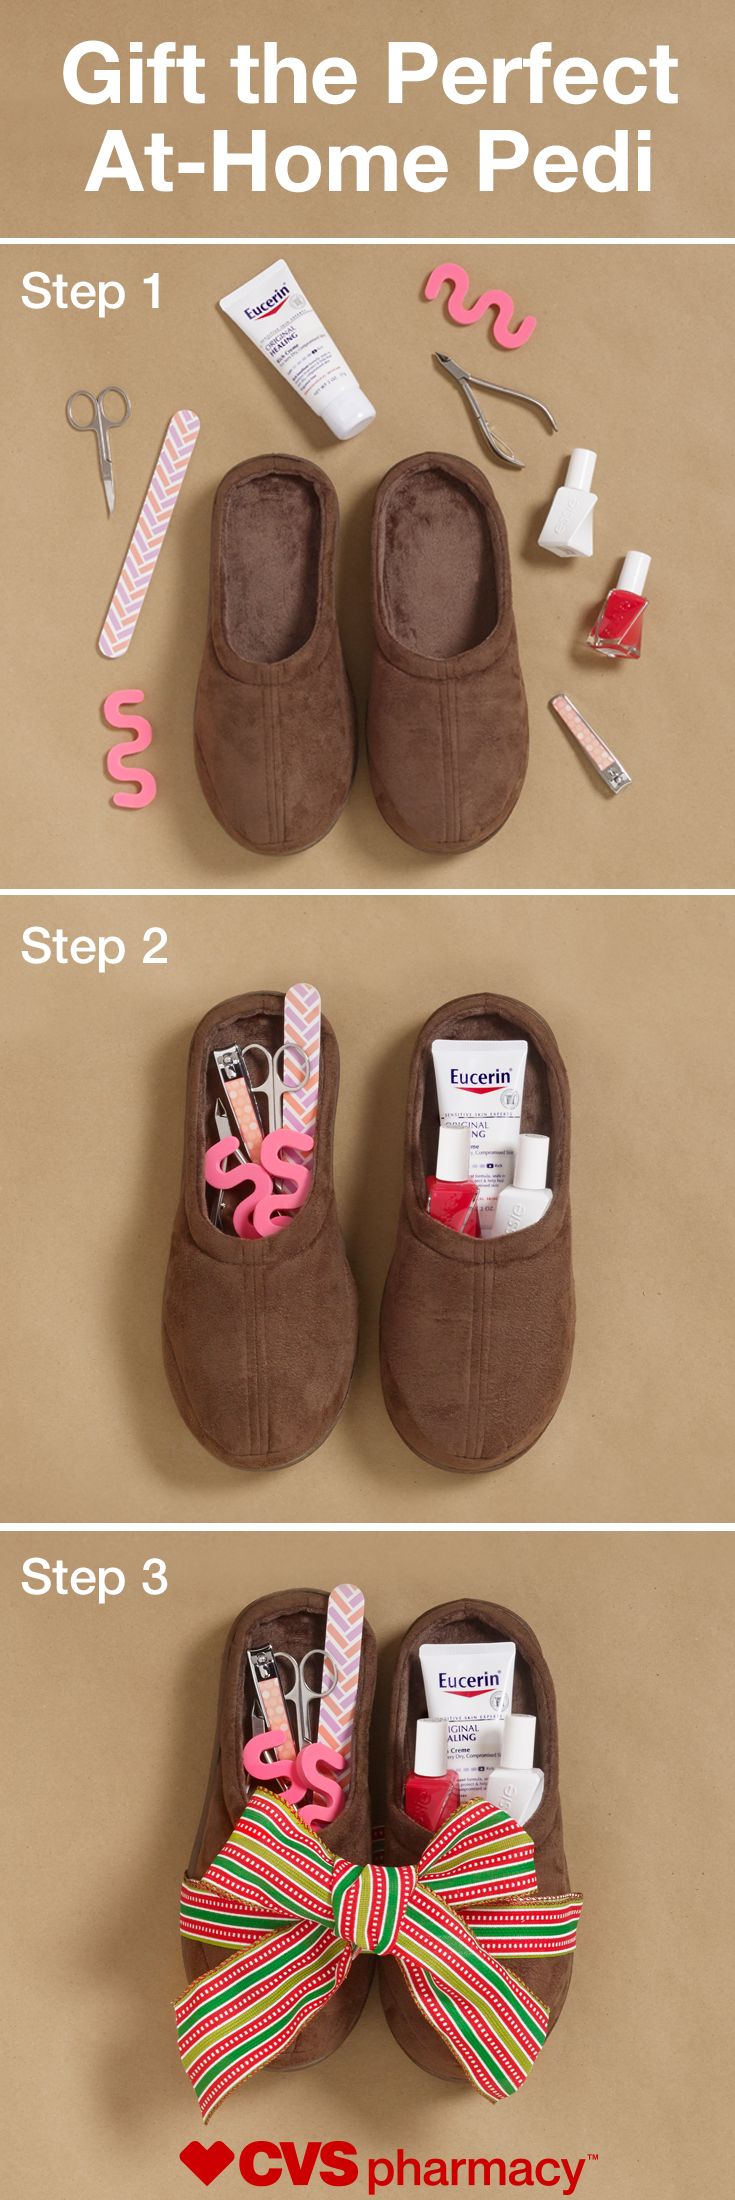 Give the perfect at home pedicure kit!  Step 1: Pick up your pedi supplies and a pair of slippers at CVS Pharmacy.  Step 2: Assemble supplies in the slippers, tucking in the smaller items.  Step 3: Finish with a festive bow.